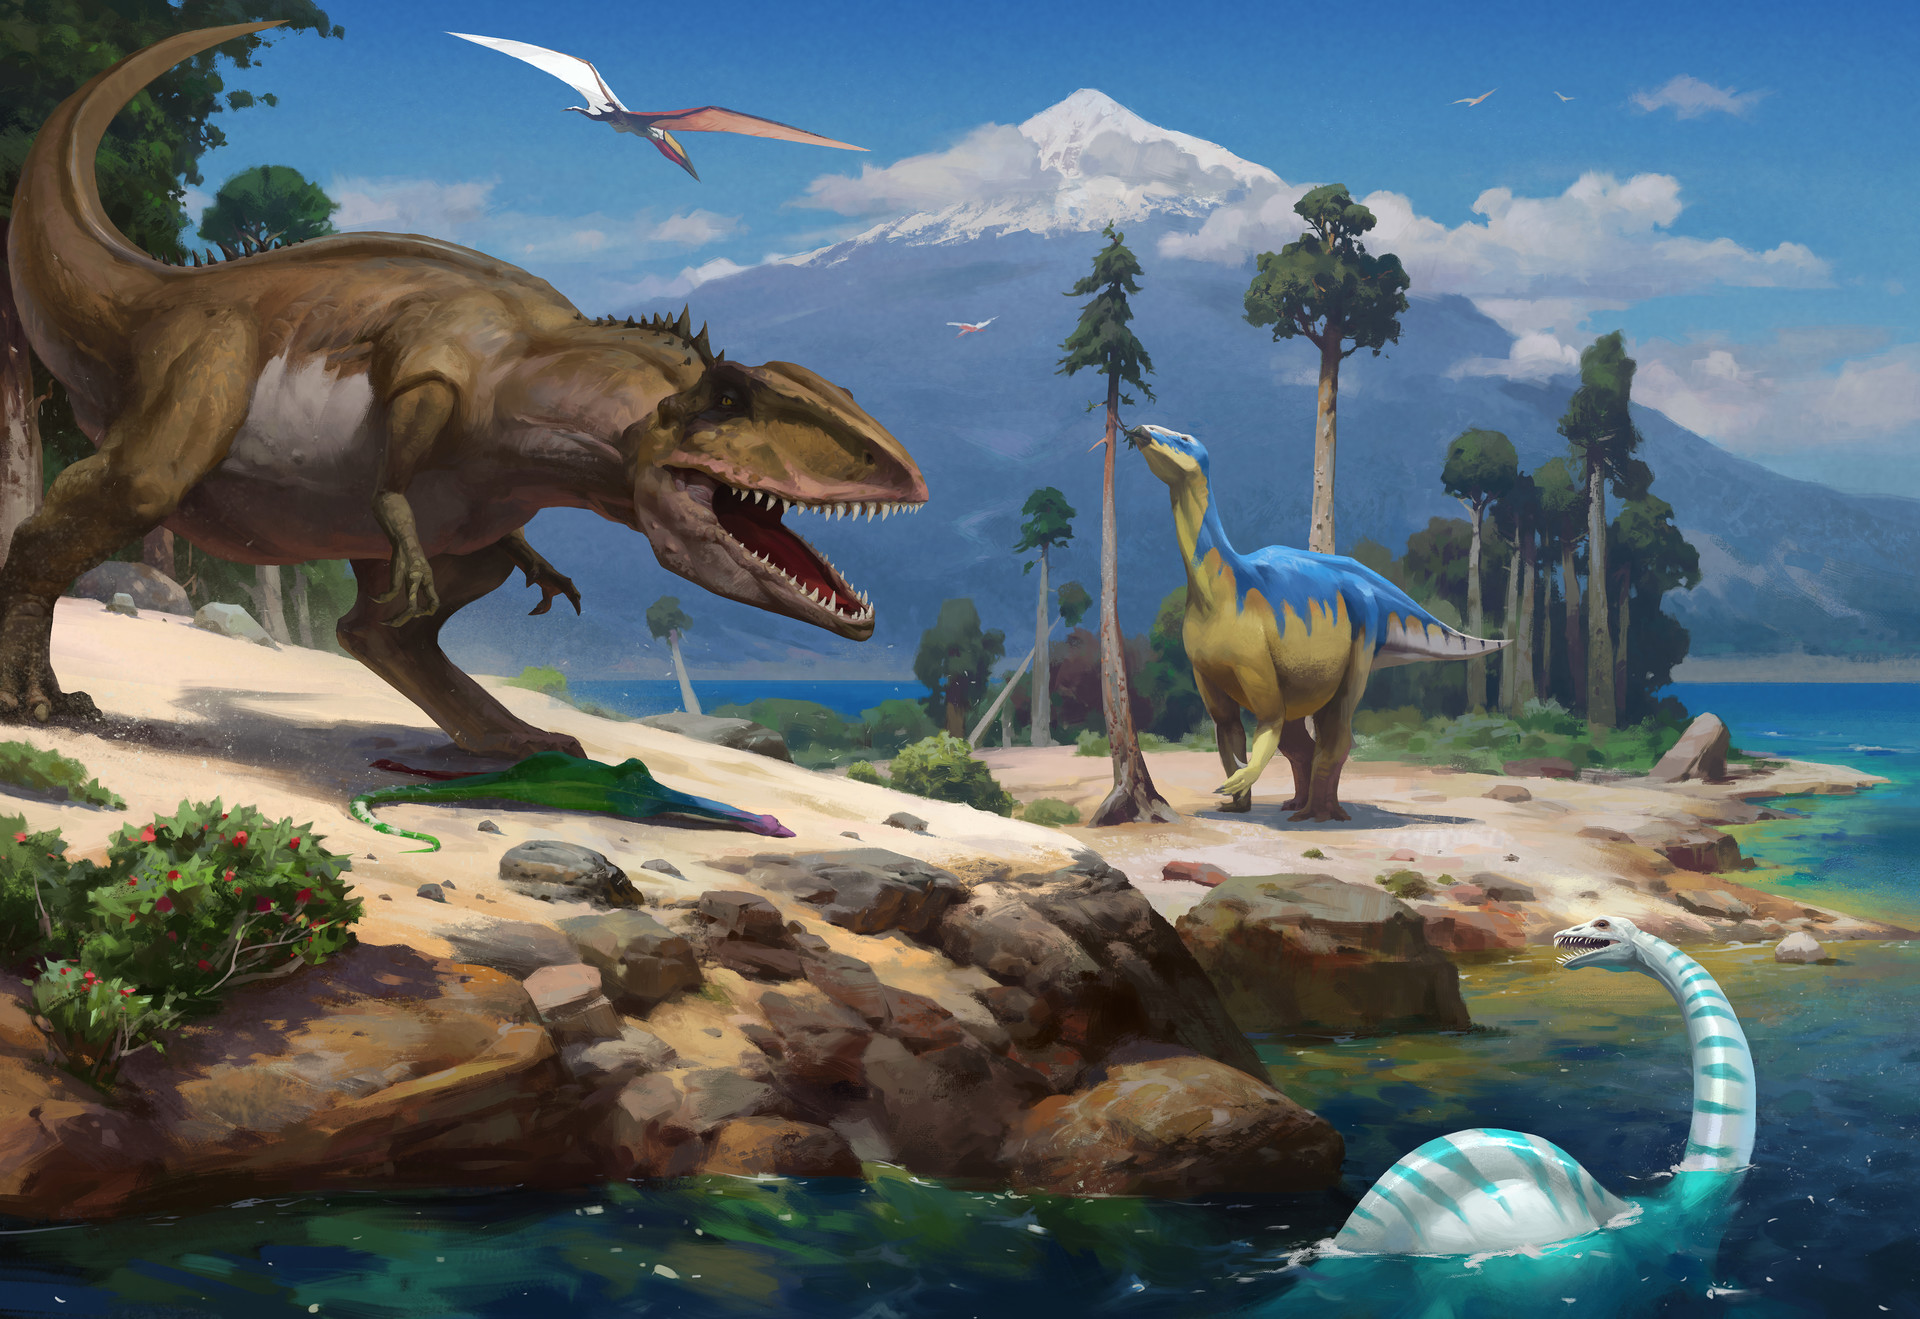 The landscape of the Cretaceous period. by Nikolai Litvinenko